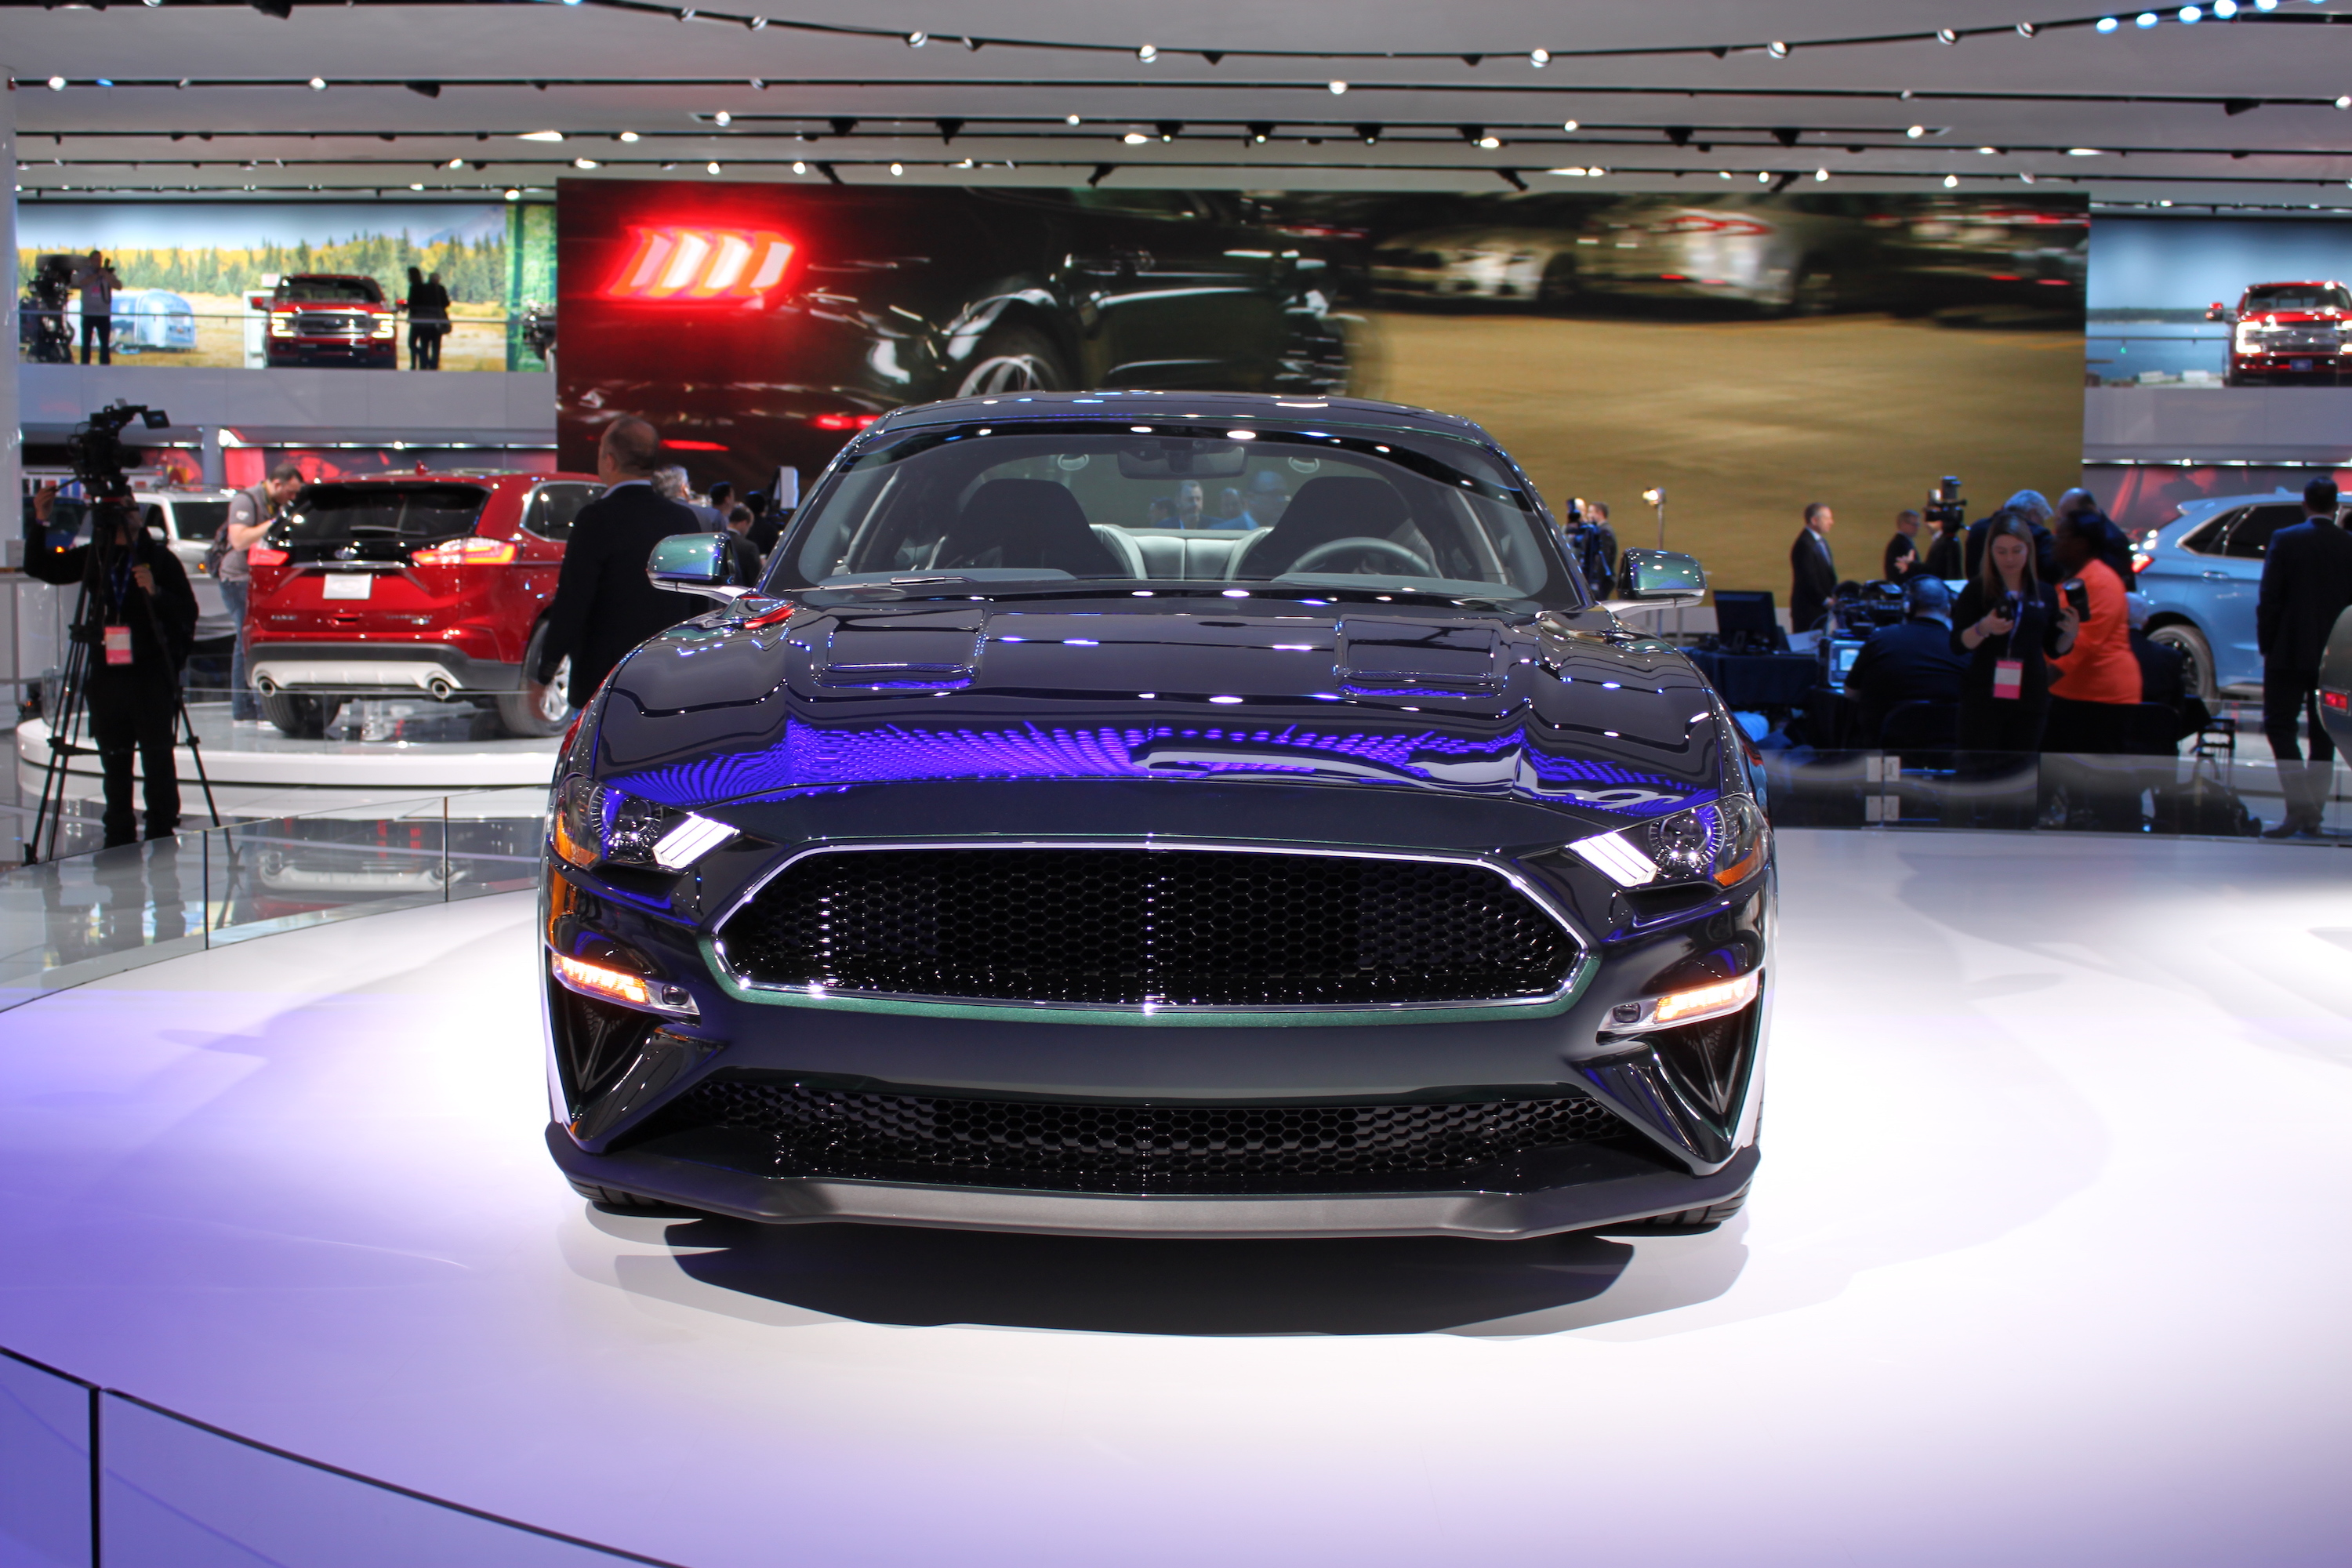 2019 ford mustang bullitt debuts with sinister looks and 475 hp v8 ford mustang forums corral net mustang forum